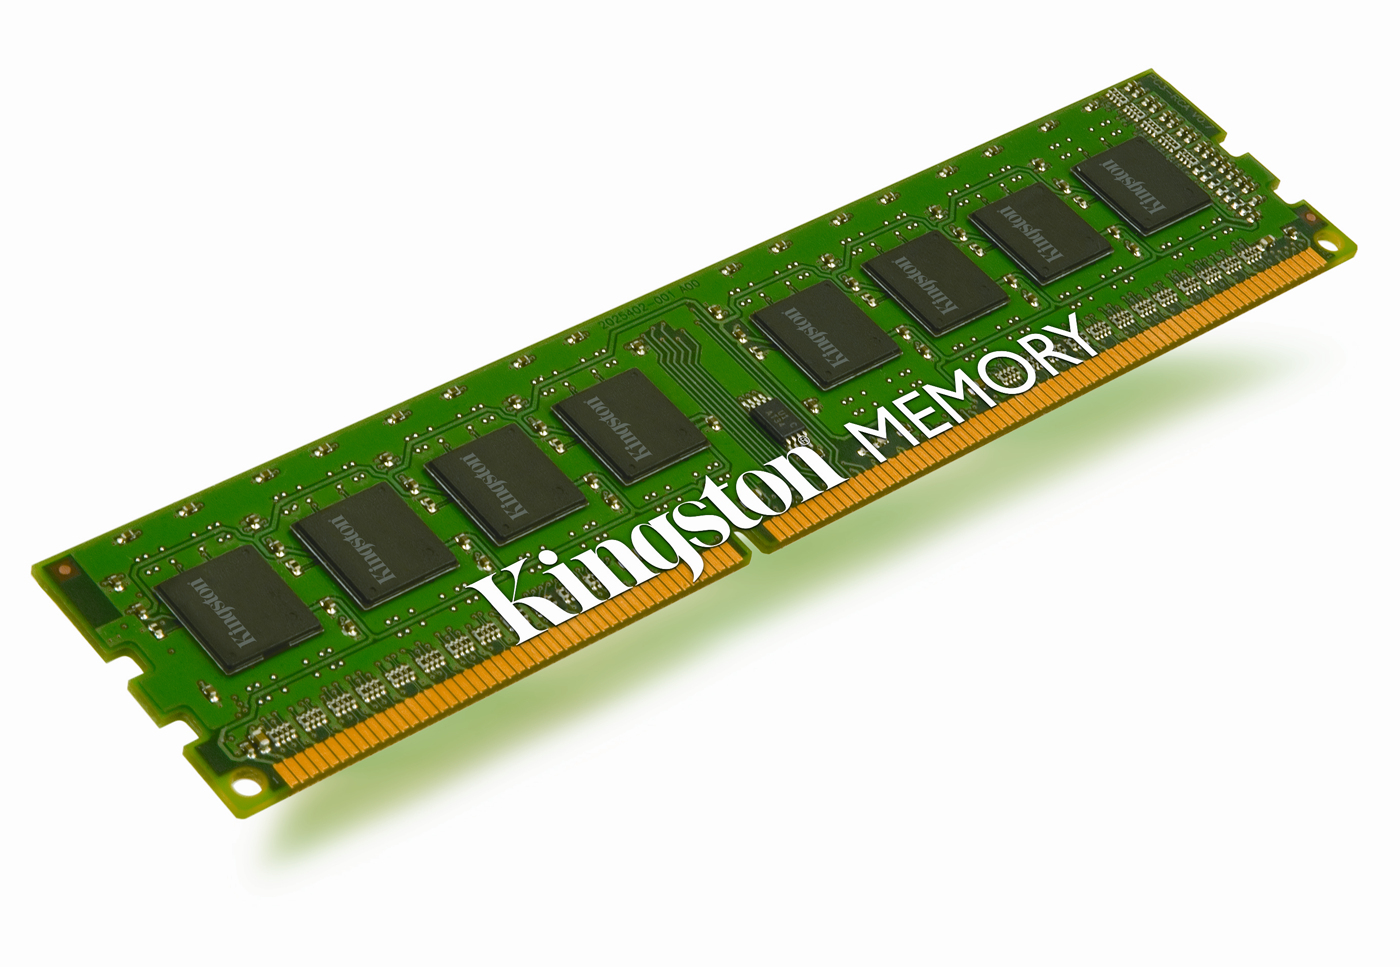 KINGSTON 8GB DDR3 1600MHz Ram KVR16N11/8 Kutusuz